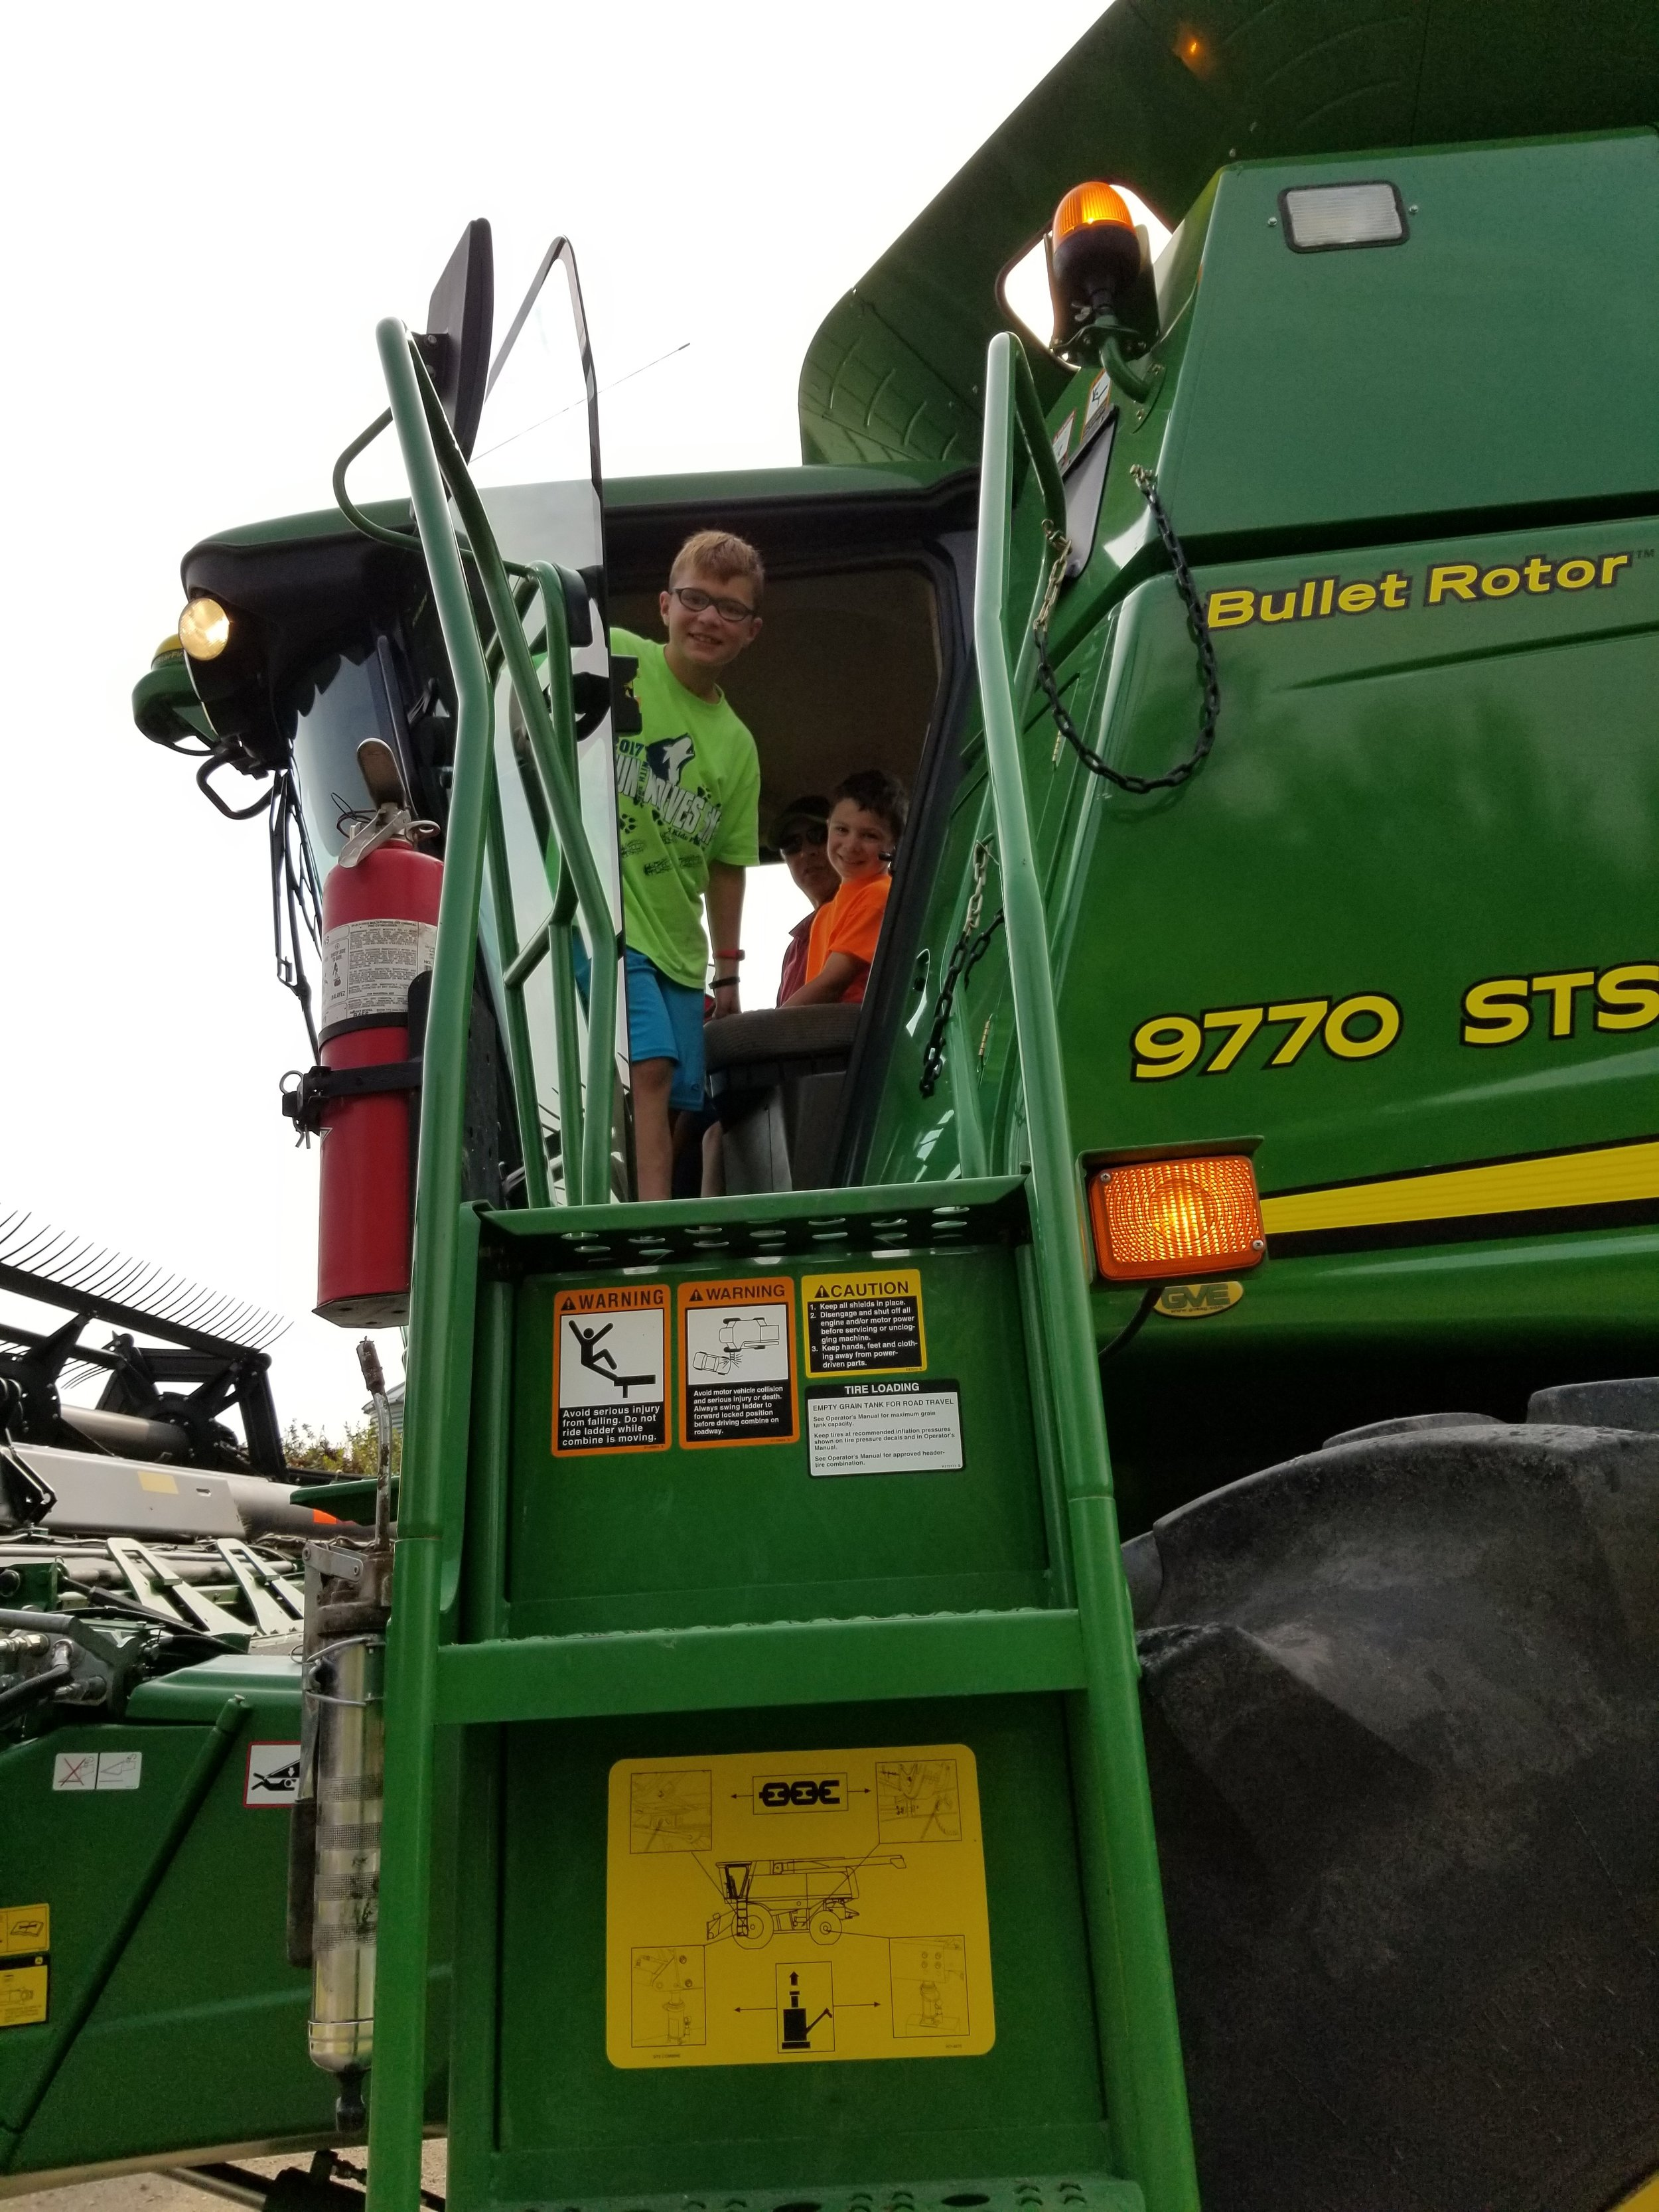 2 - Riding in a combine (and being able to tell their friends what a combine is)